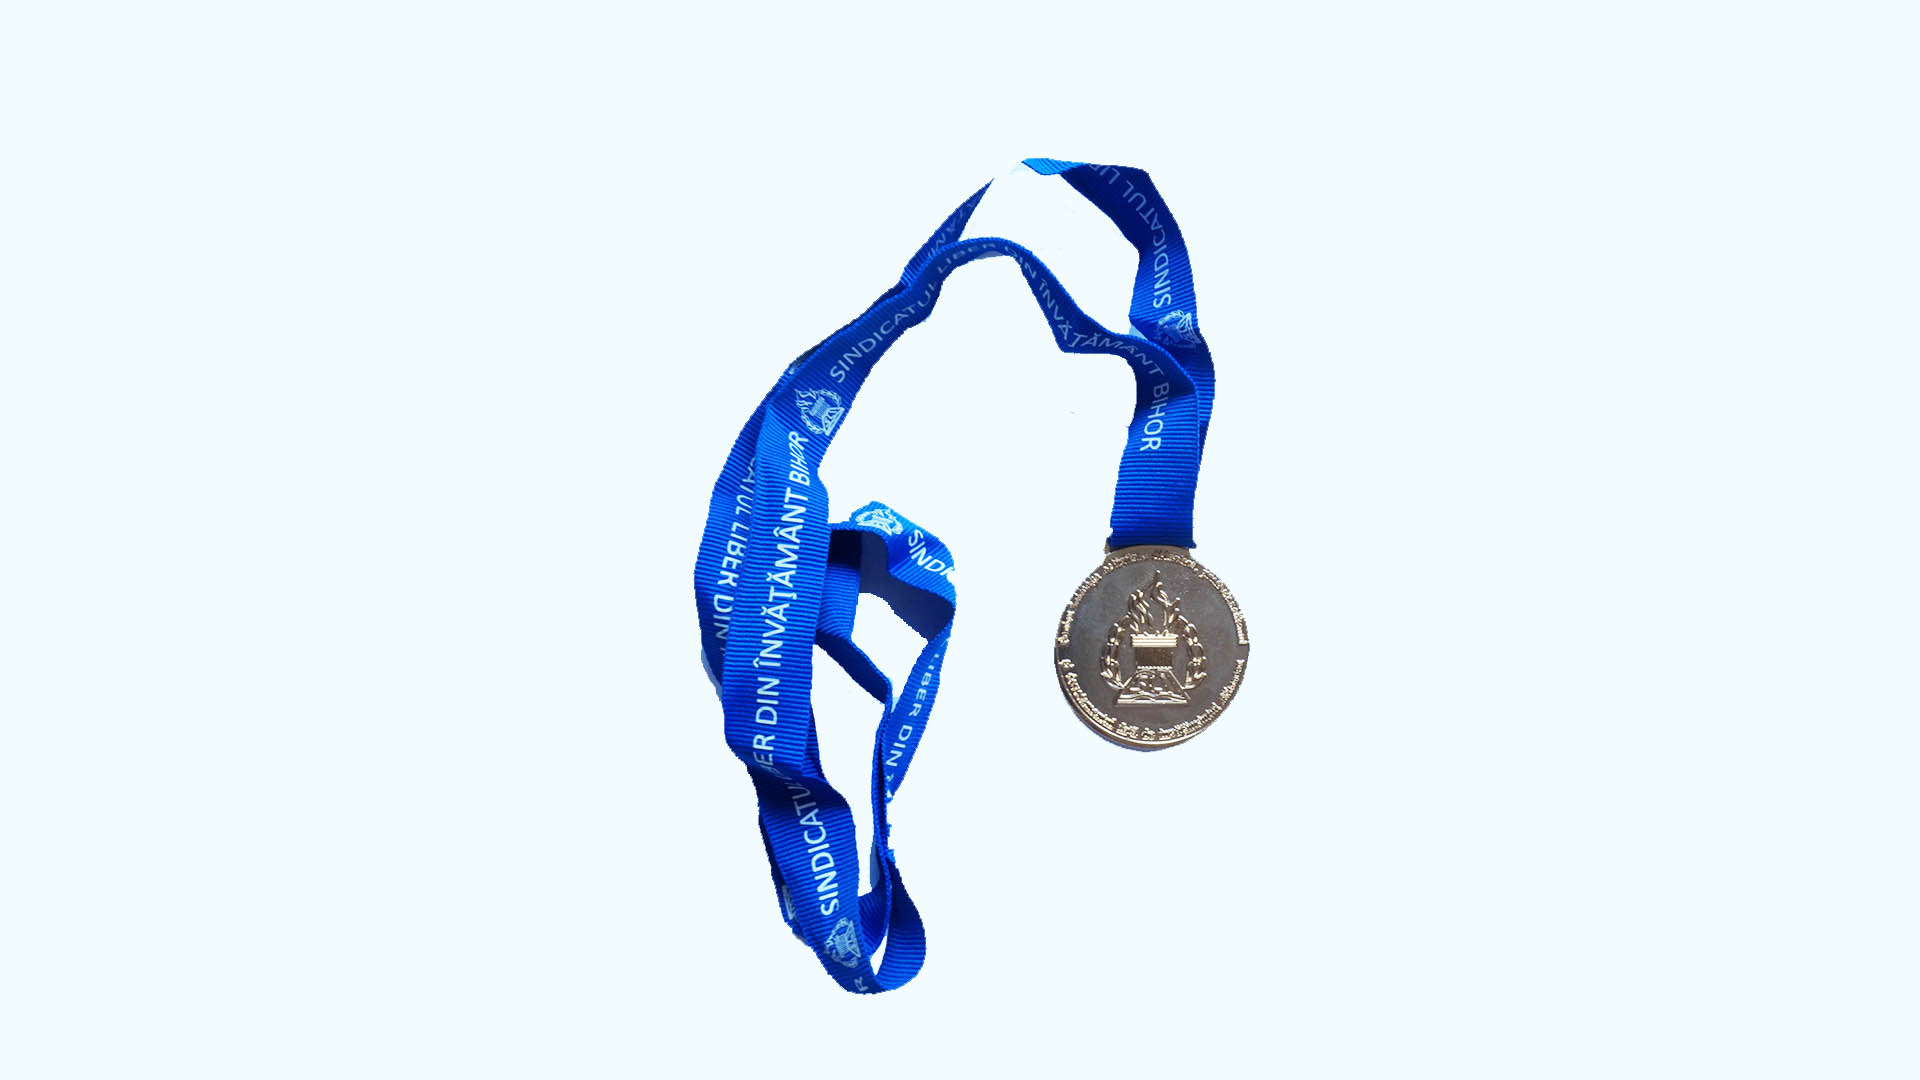 silver medal with blue band